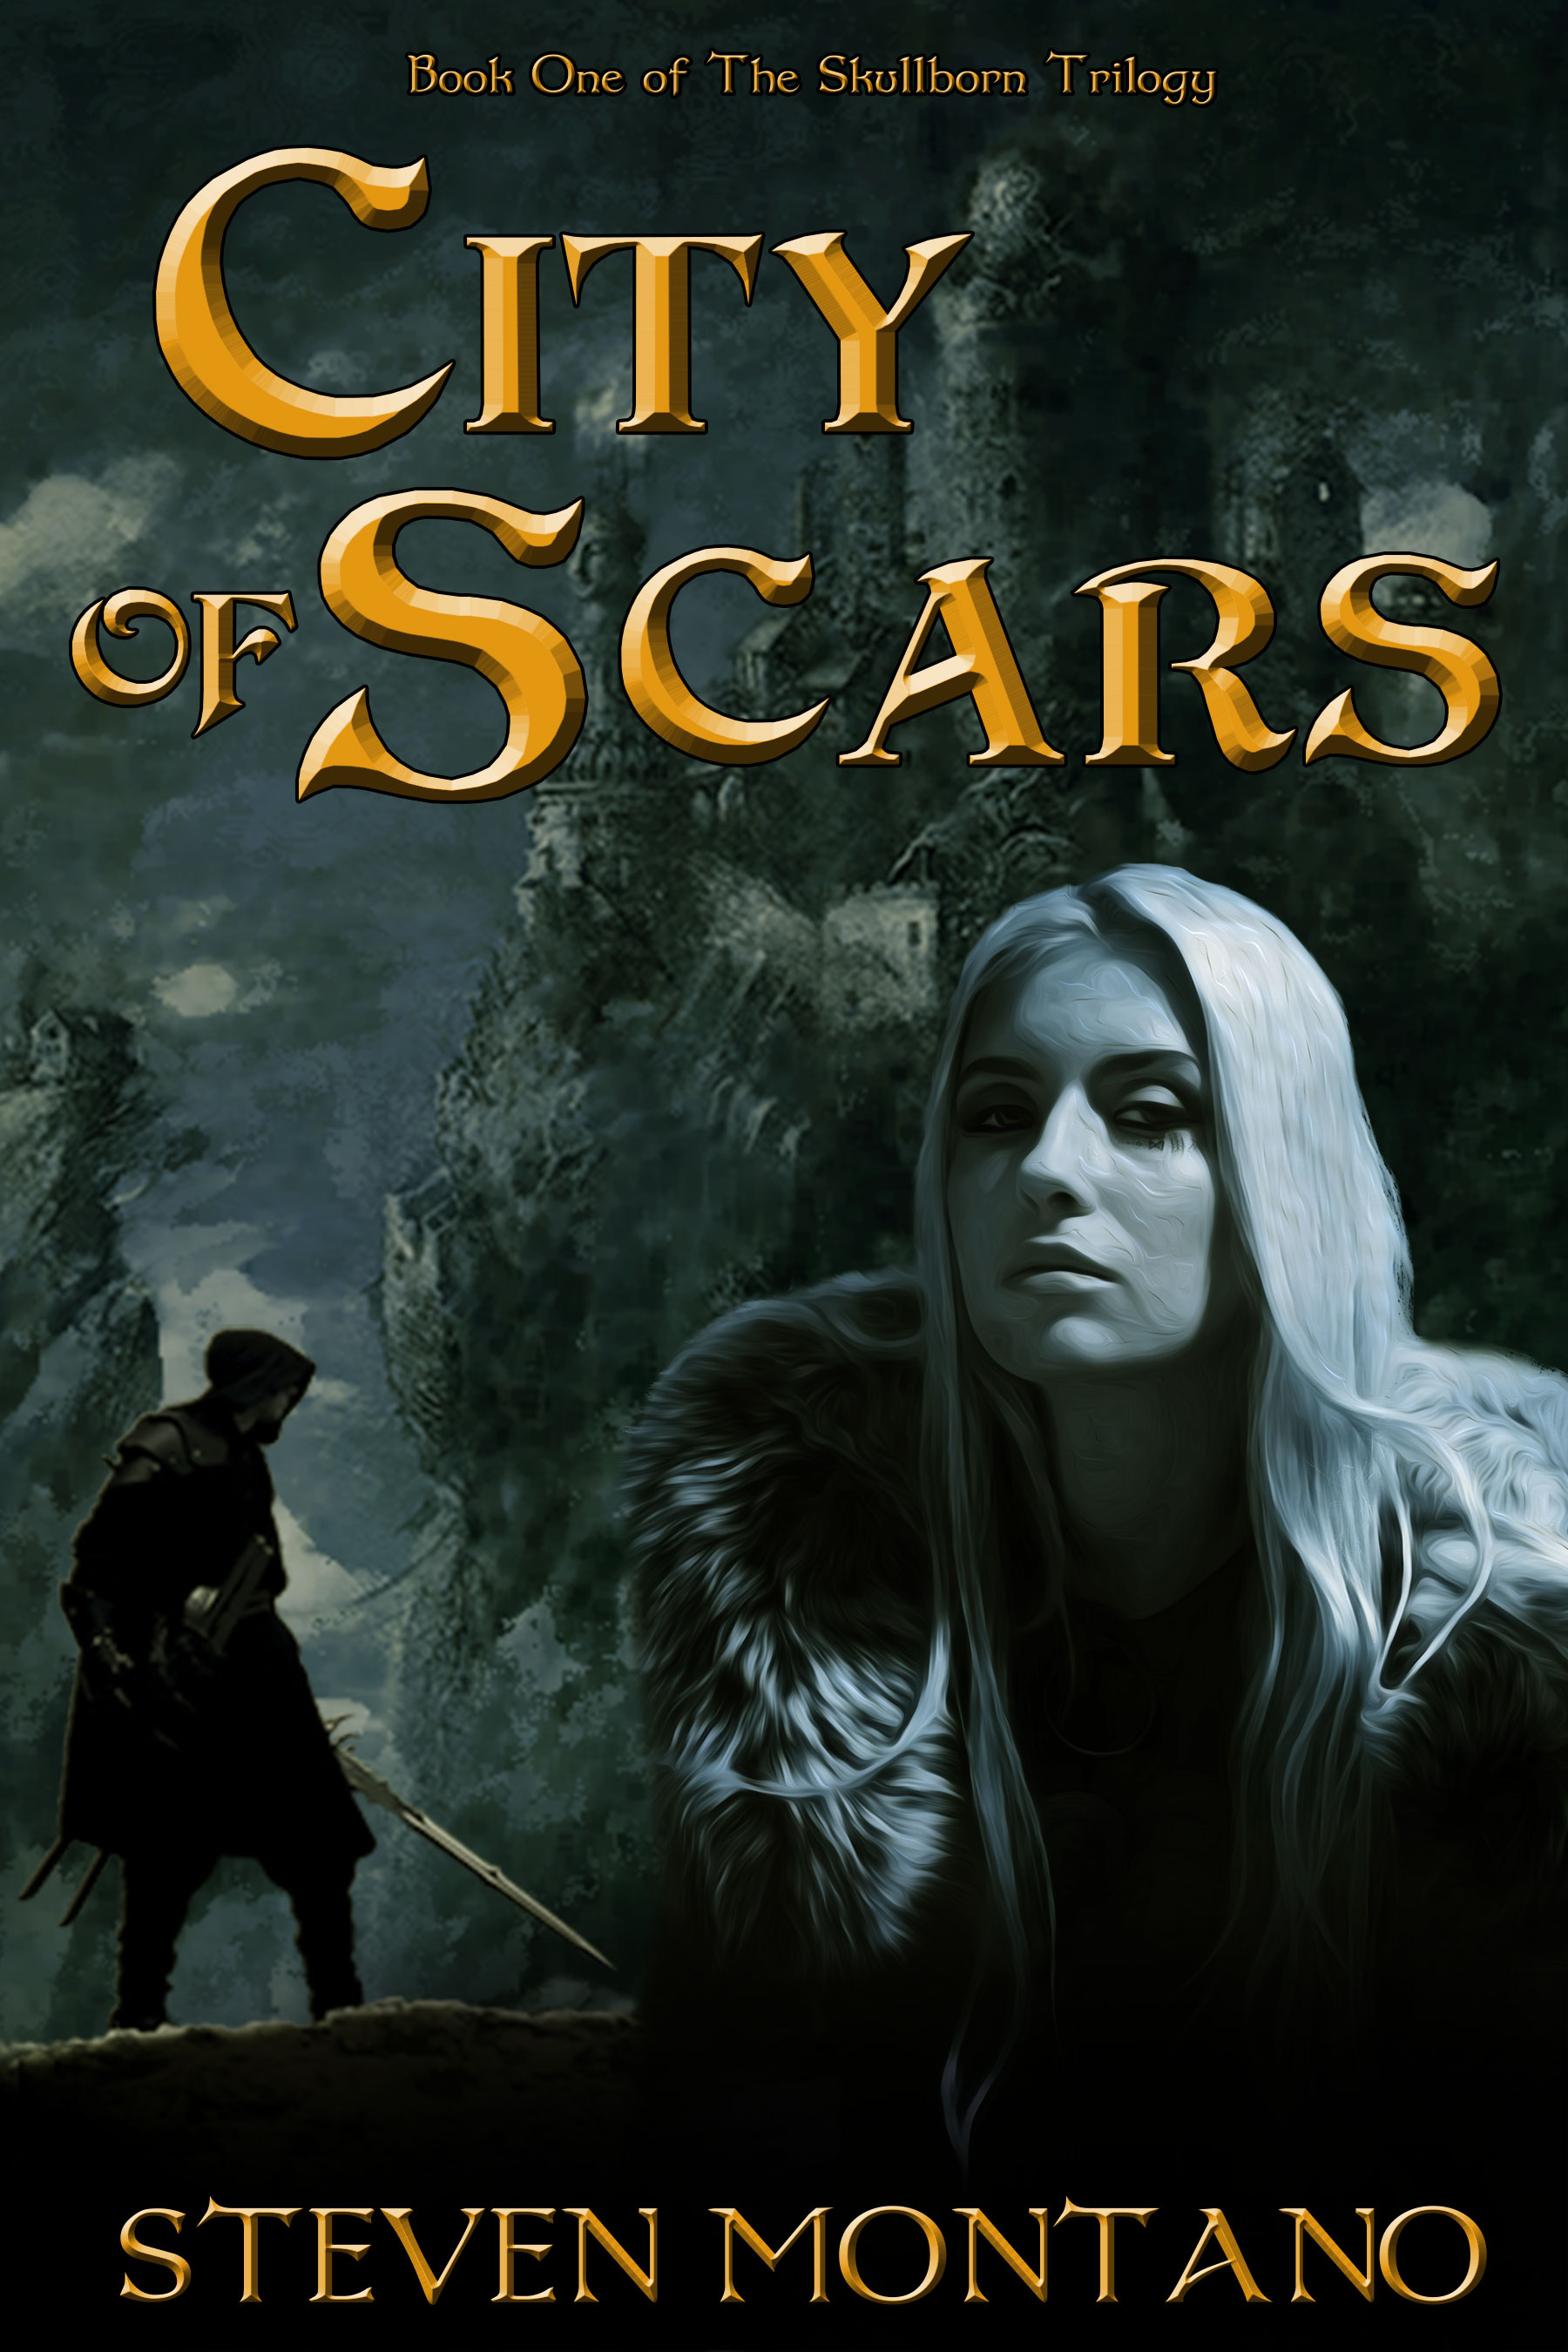 City of scars - wikipedia republished  wiki 2